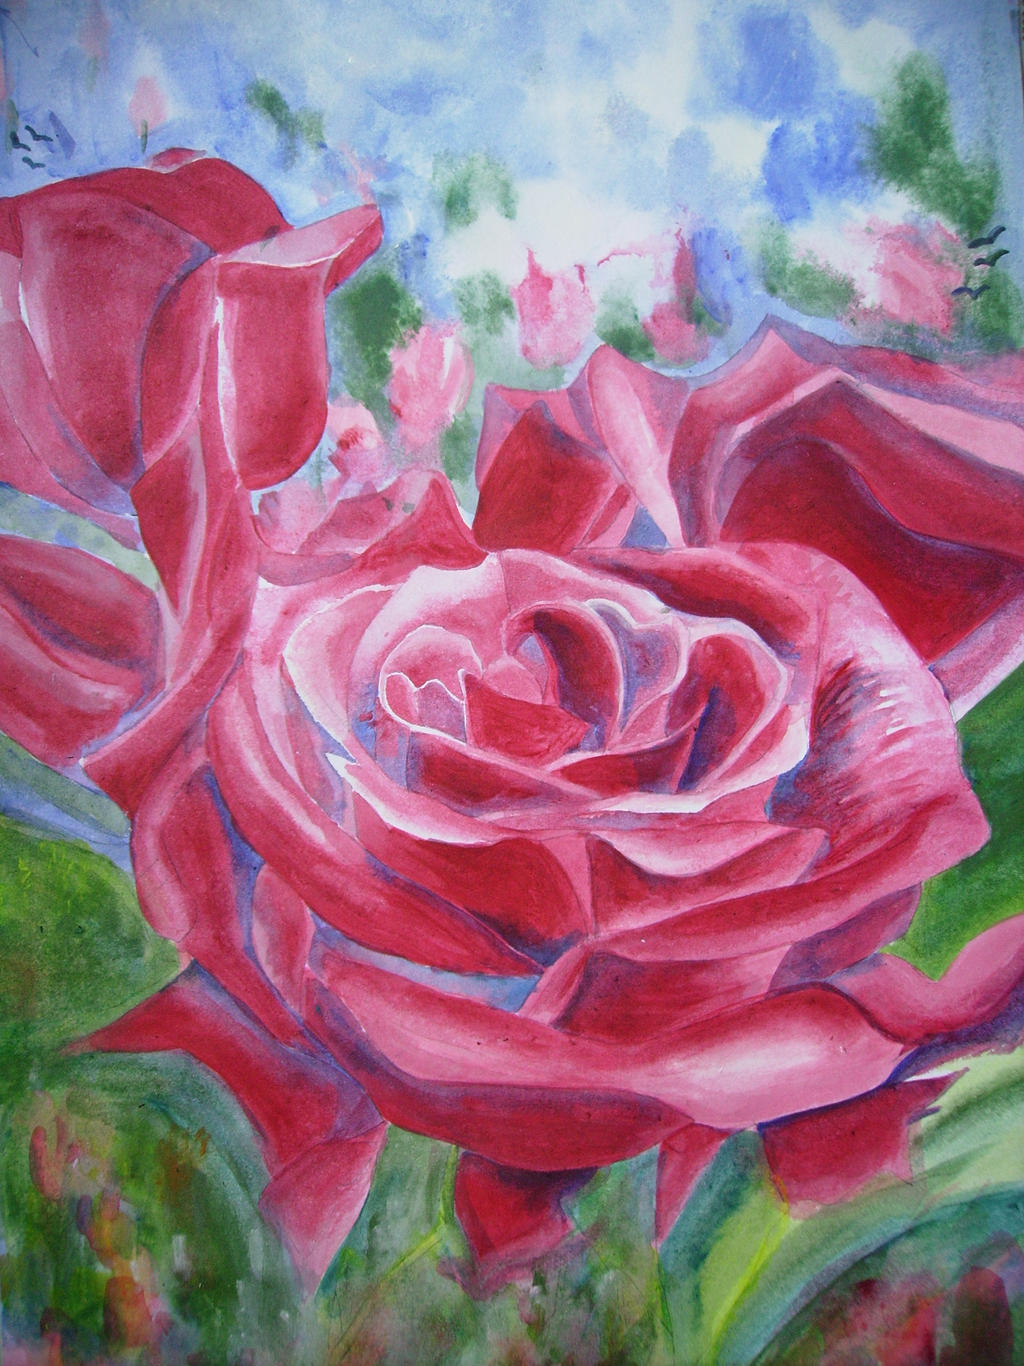 Flowers Painting 2 by i on DeviantArt